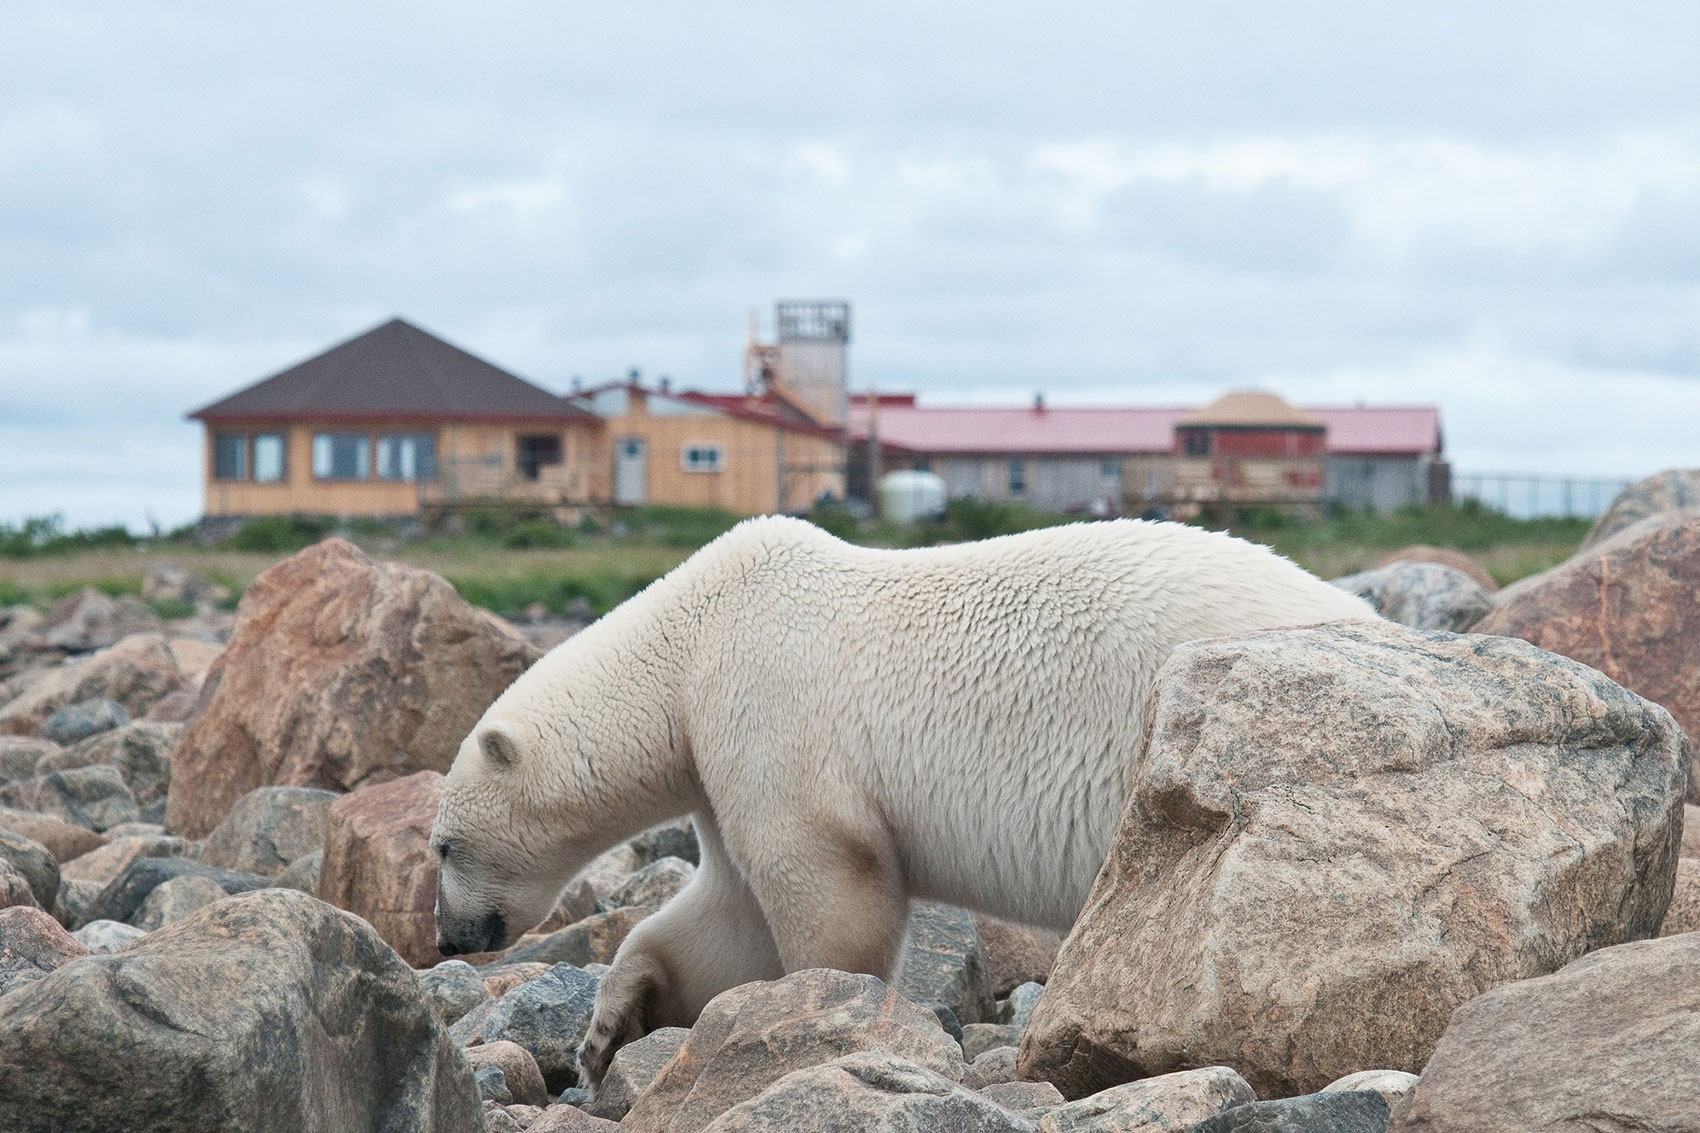 Polar bear wandering in front of Seal River Heritage Lodge. Dennis Fast photo.